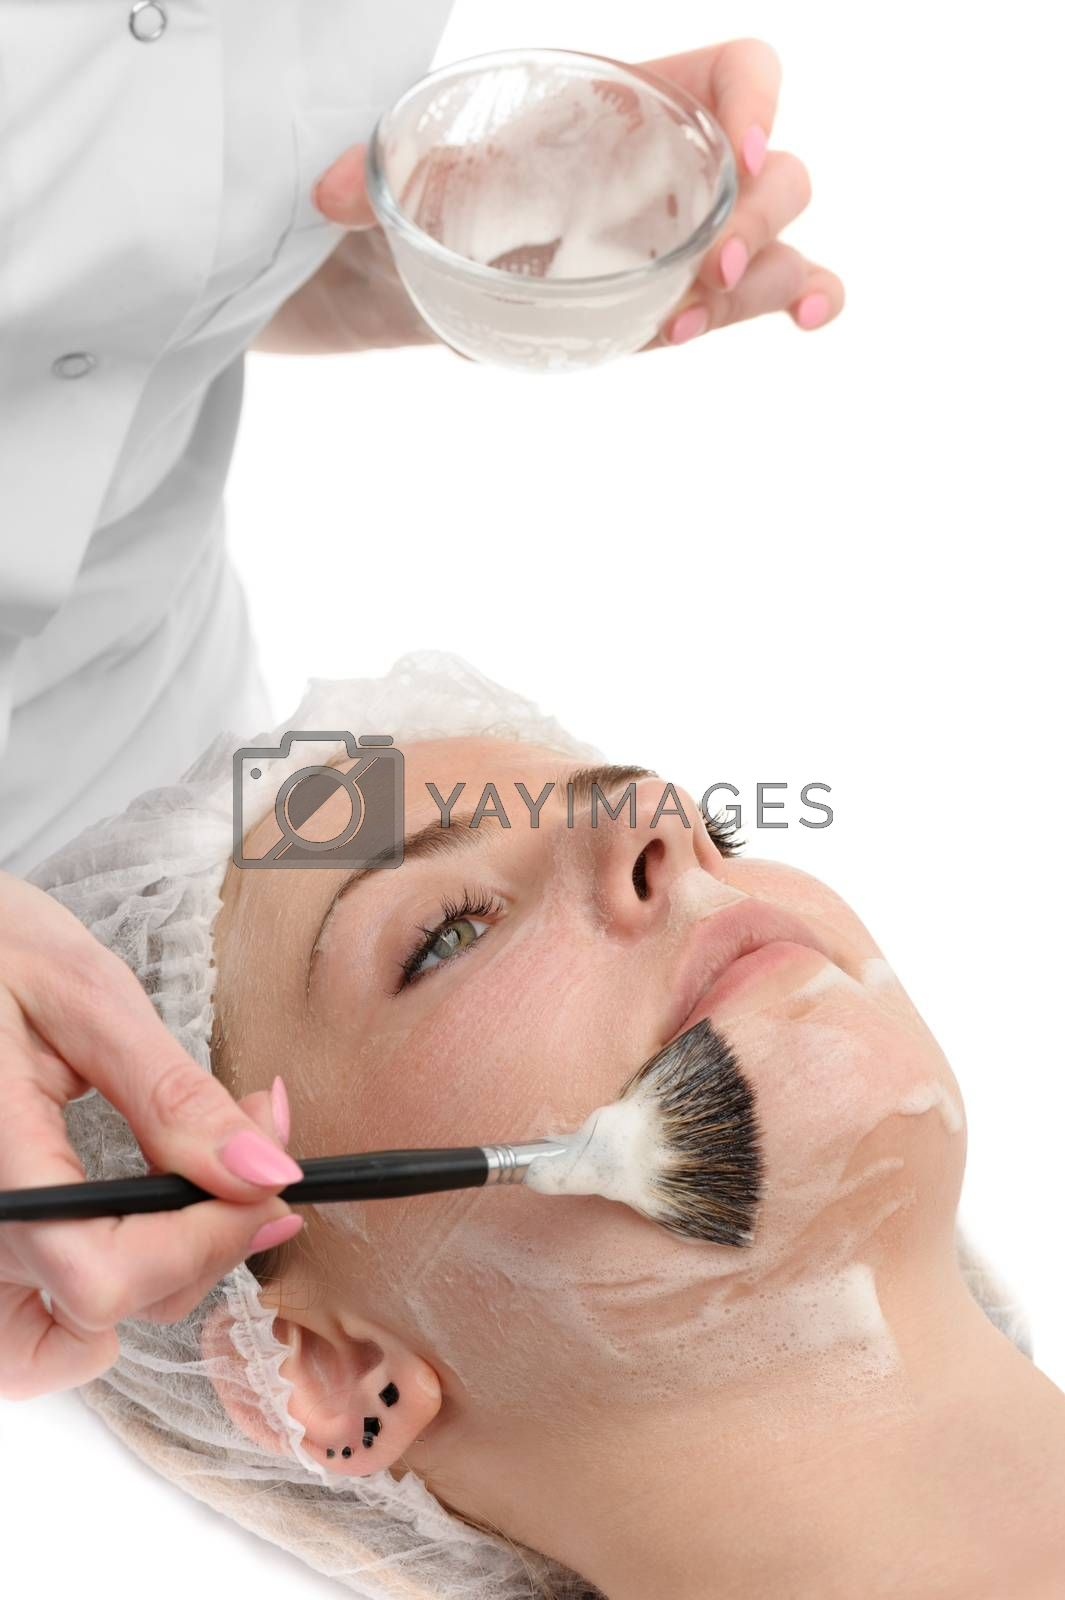 Royalty free image of beauty salon, facial mask applying by starush